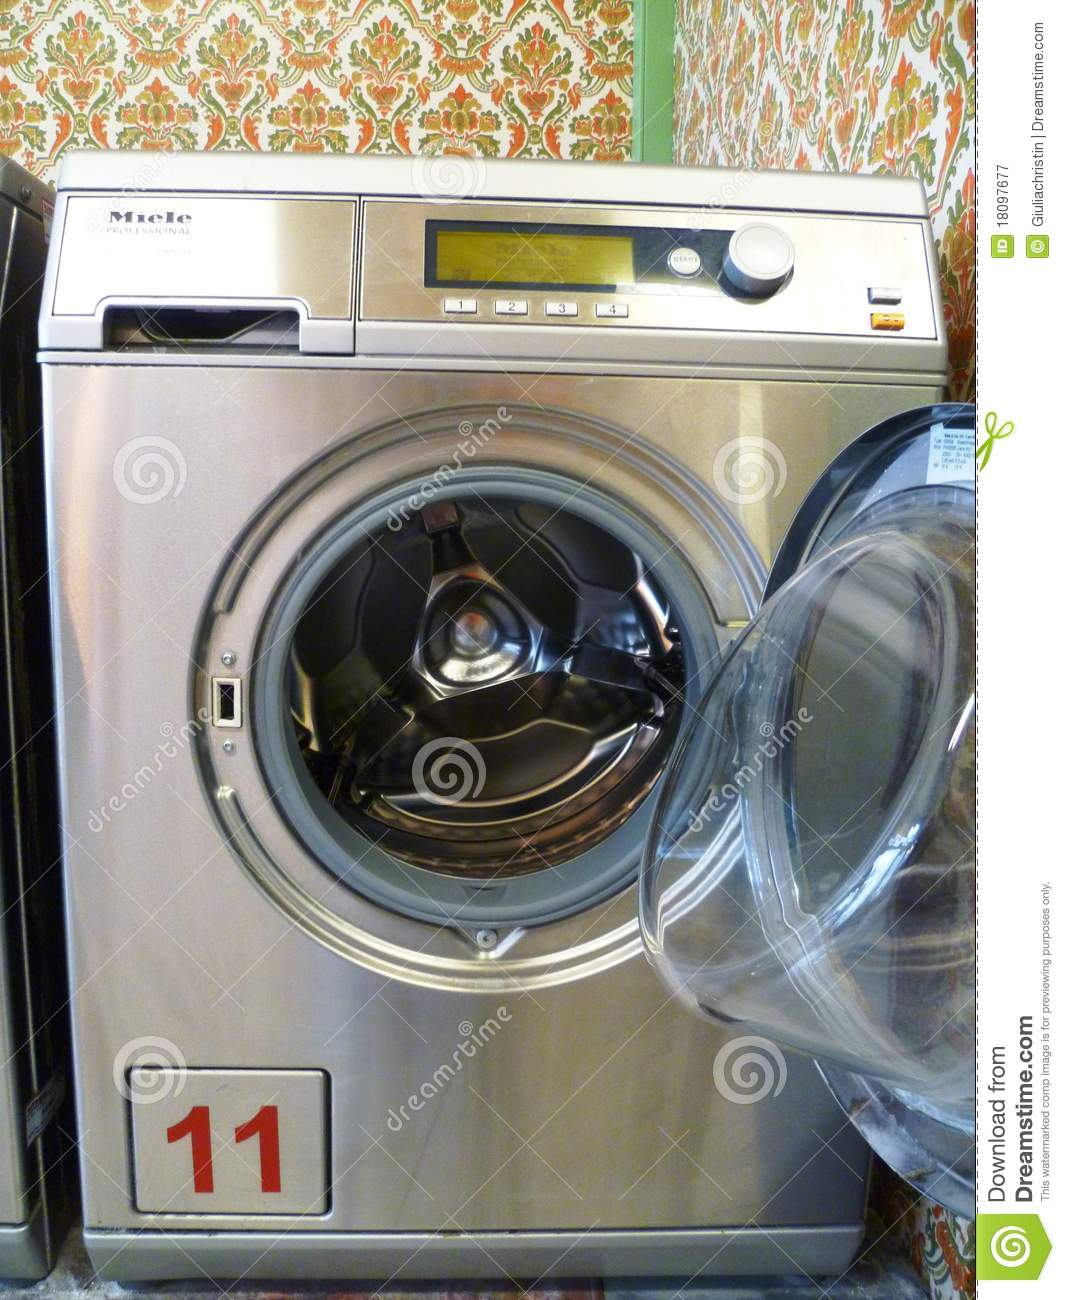 laundromat washing machine settings